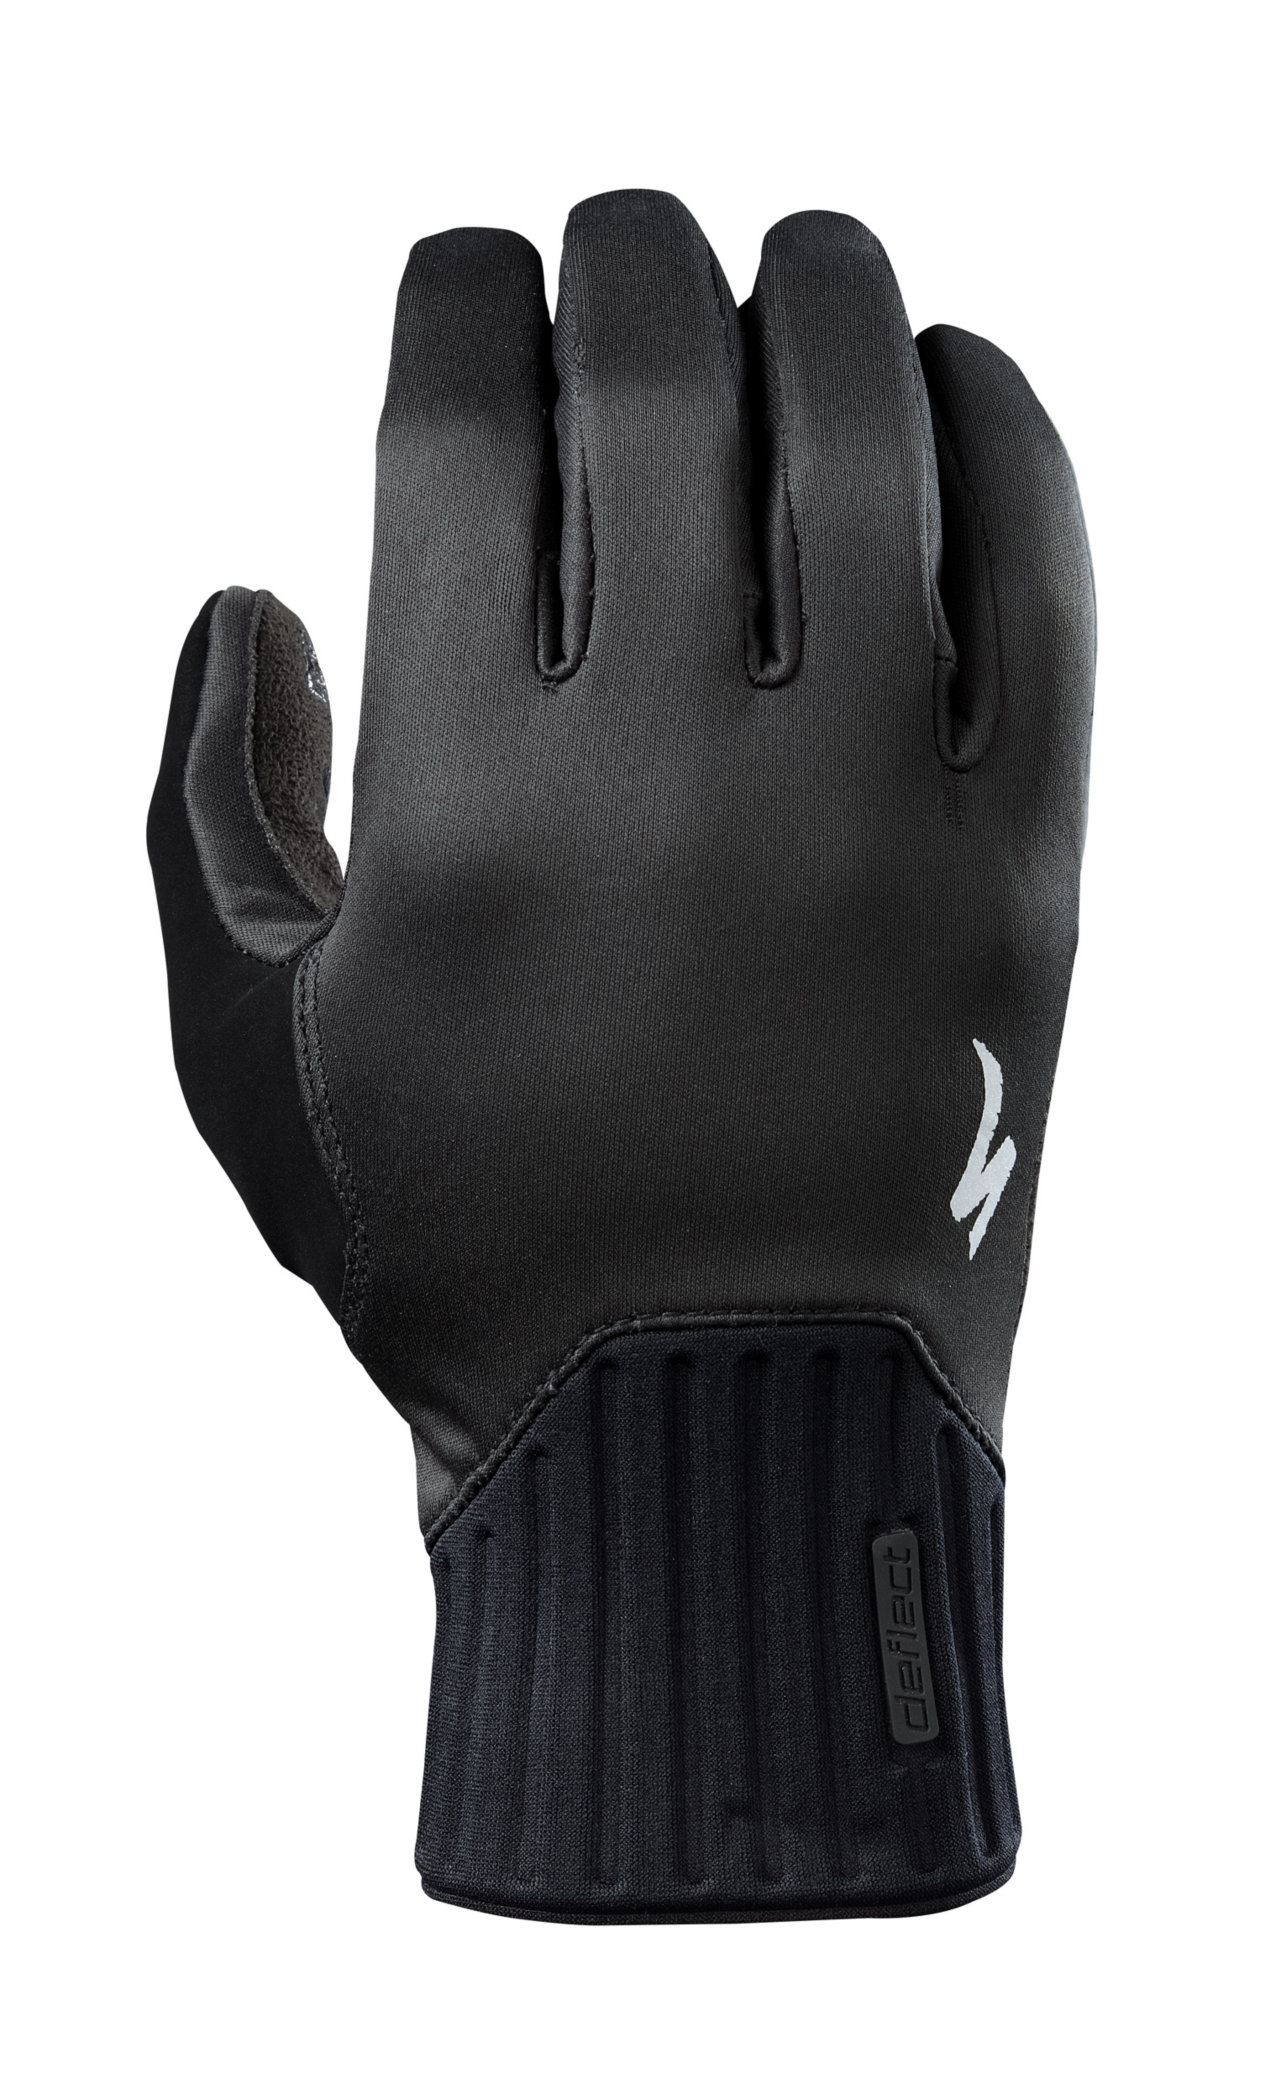 SPECIALIZED DEFLECT GLOVE LF BLK L - Bikedreams & Dustbikes